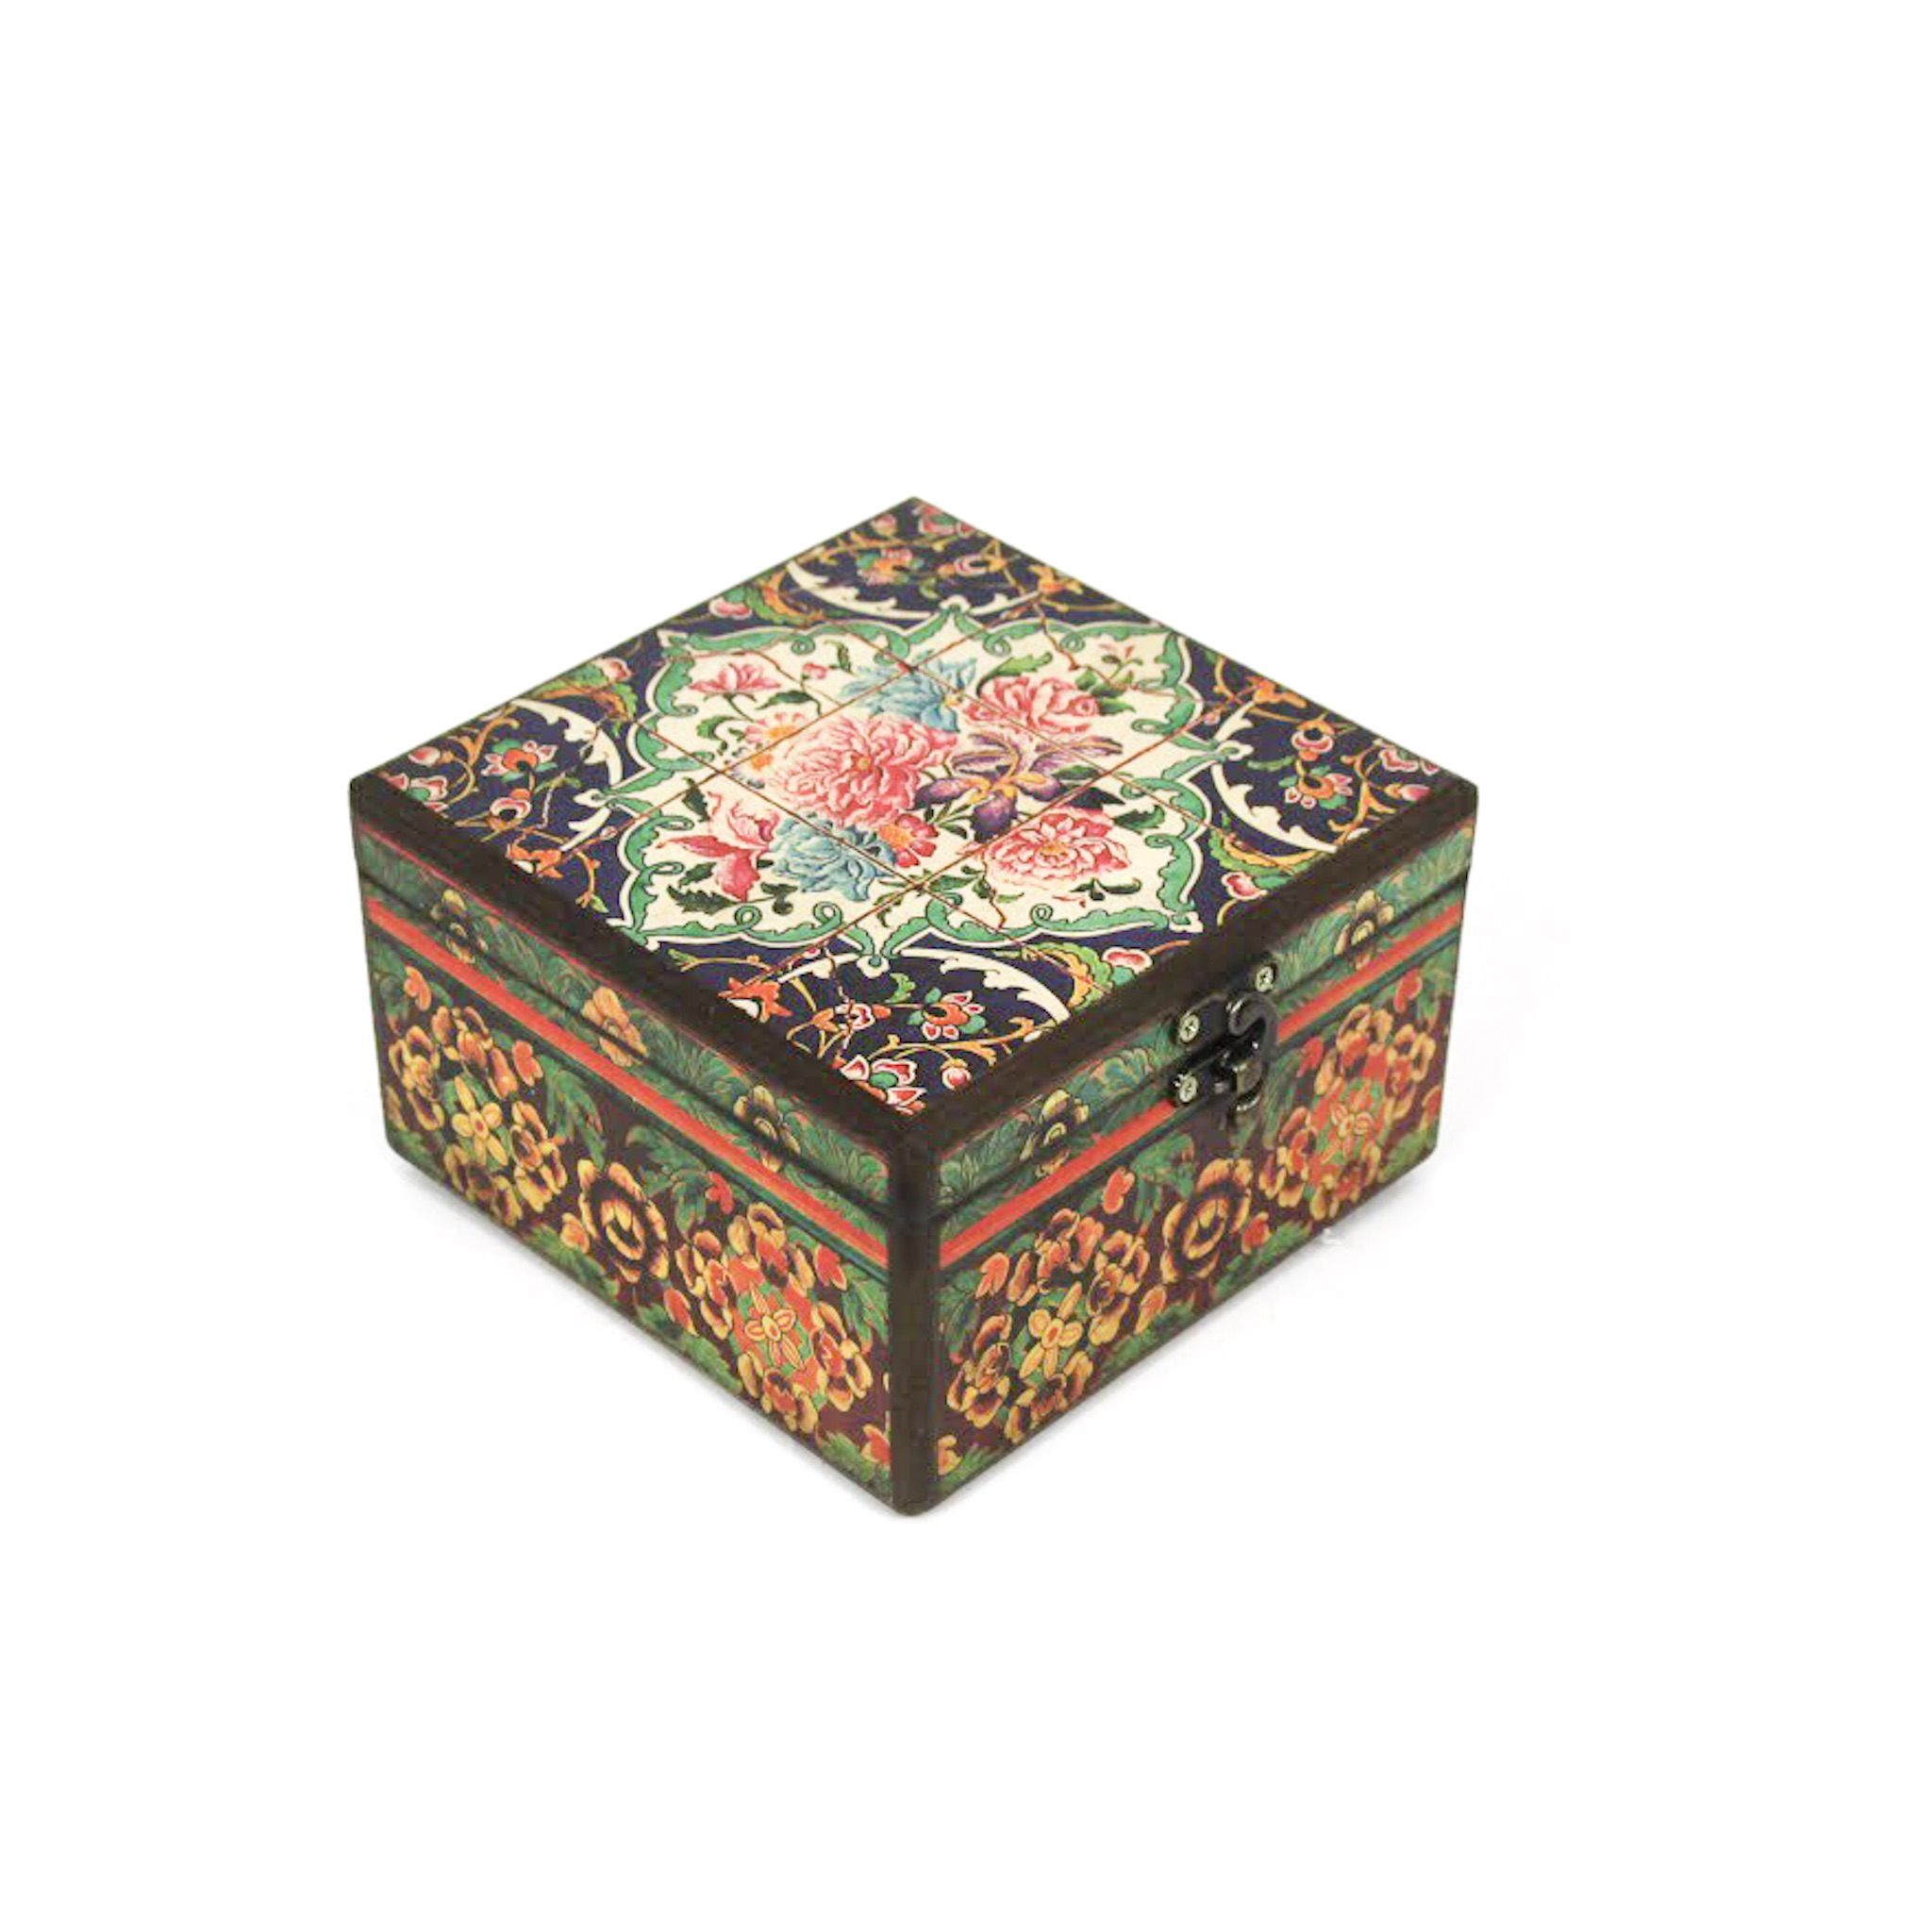 Wooden tea box with Iranian tile patterns 15cm x15cm (code13)